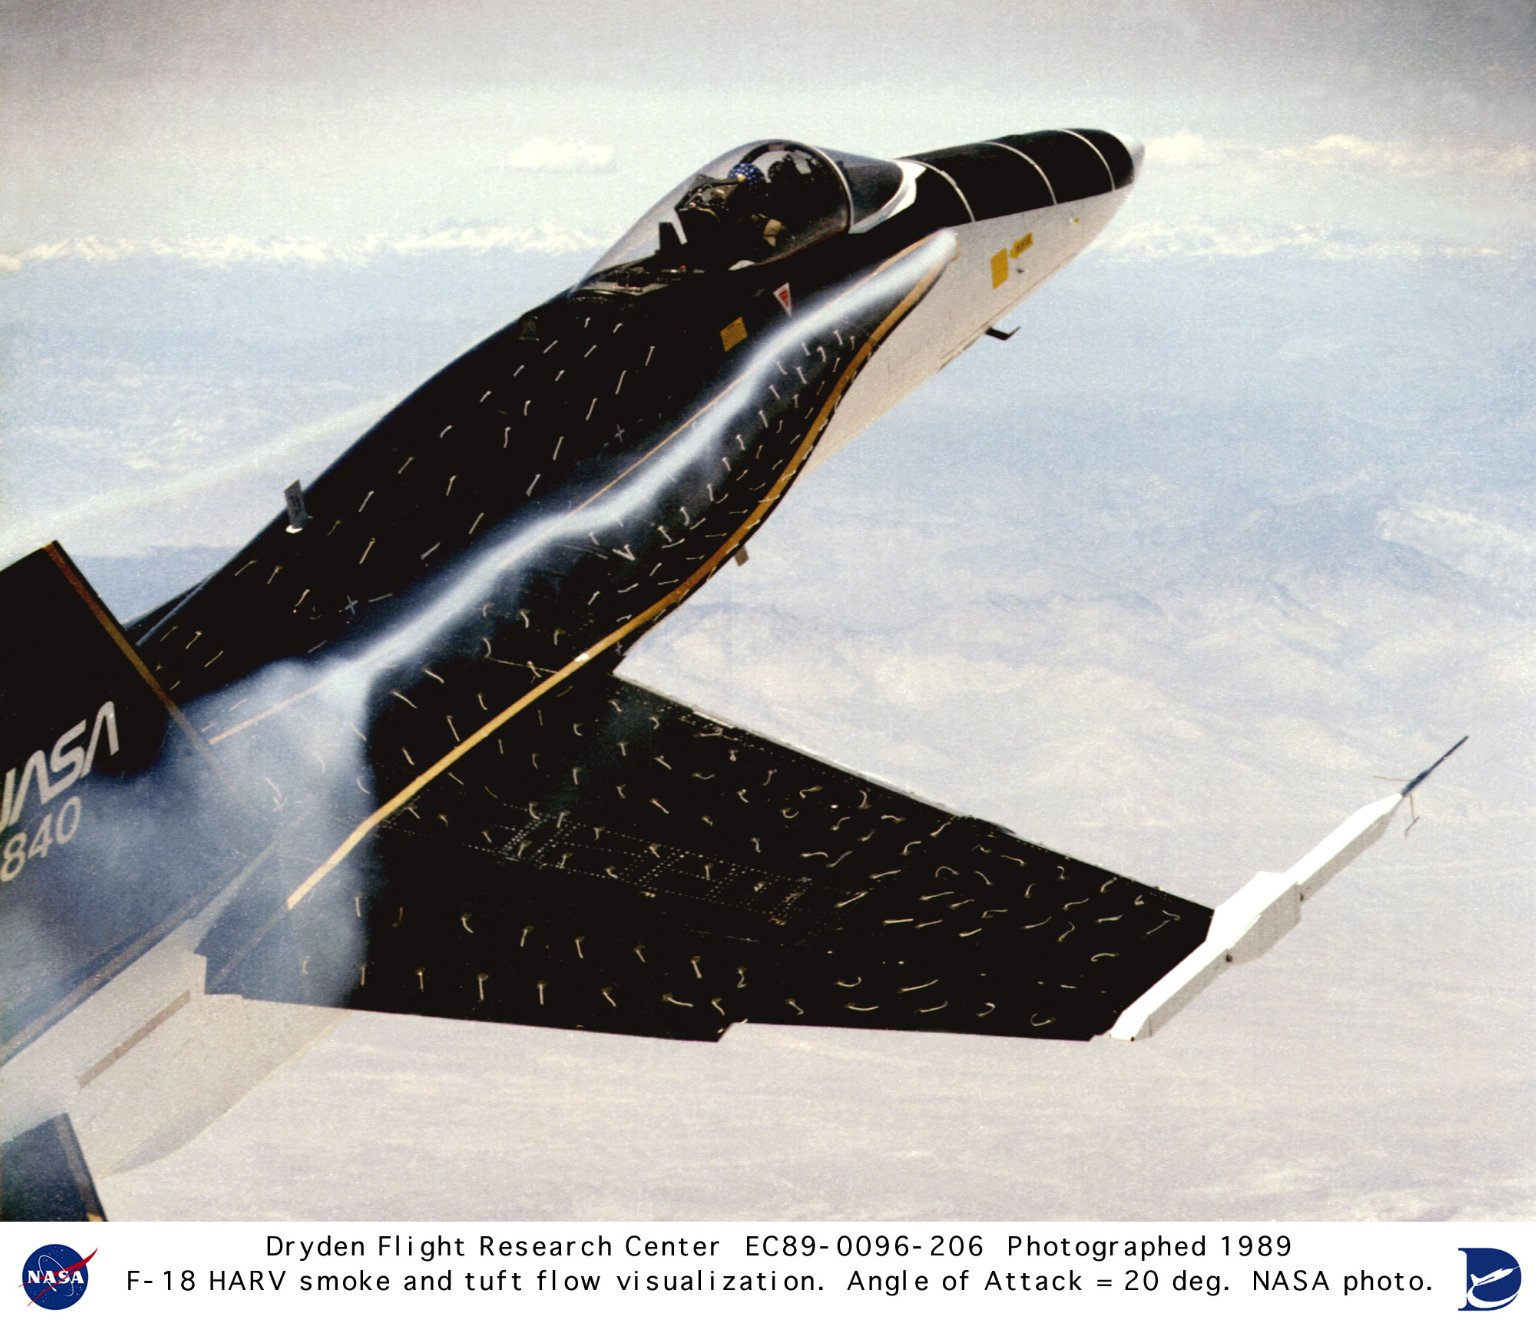 F-18 HARV smoke and tuft flow visualization at 20 degree angle of attack